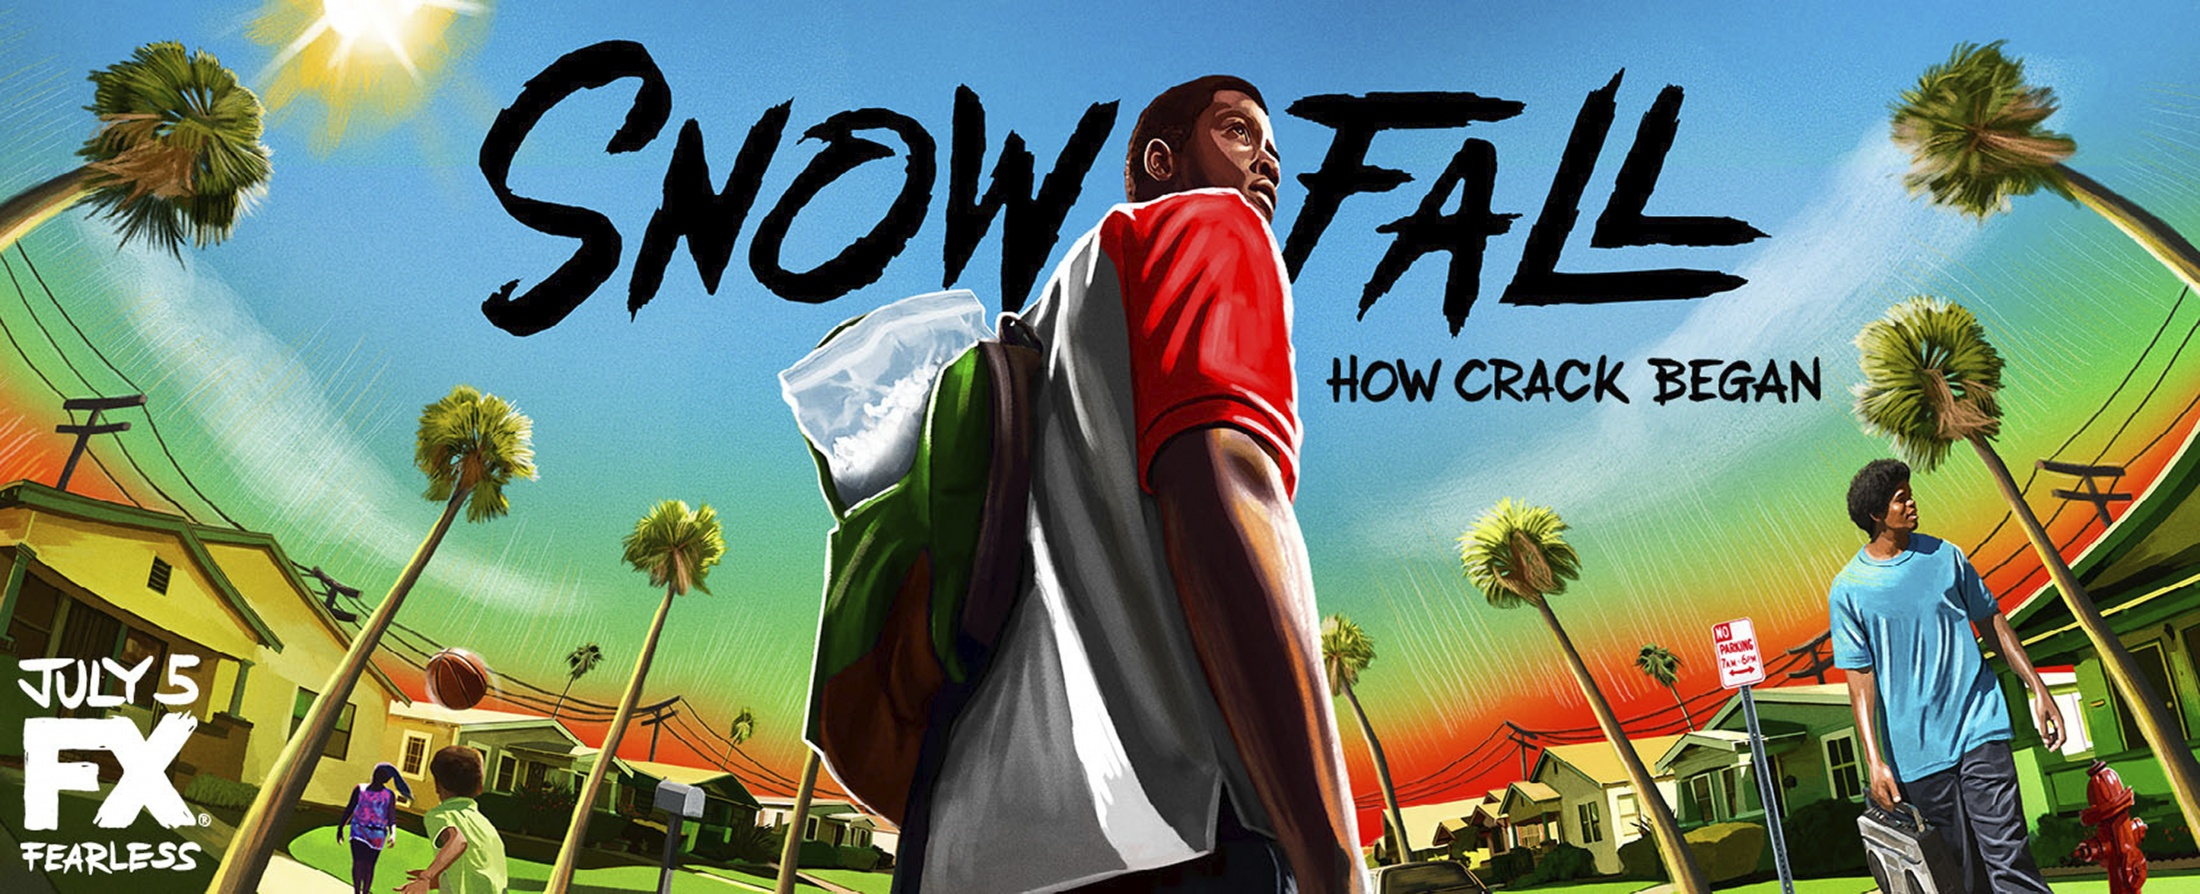 Image Media for Snowfall billboard (Franklin)